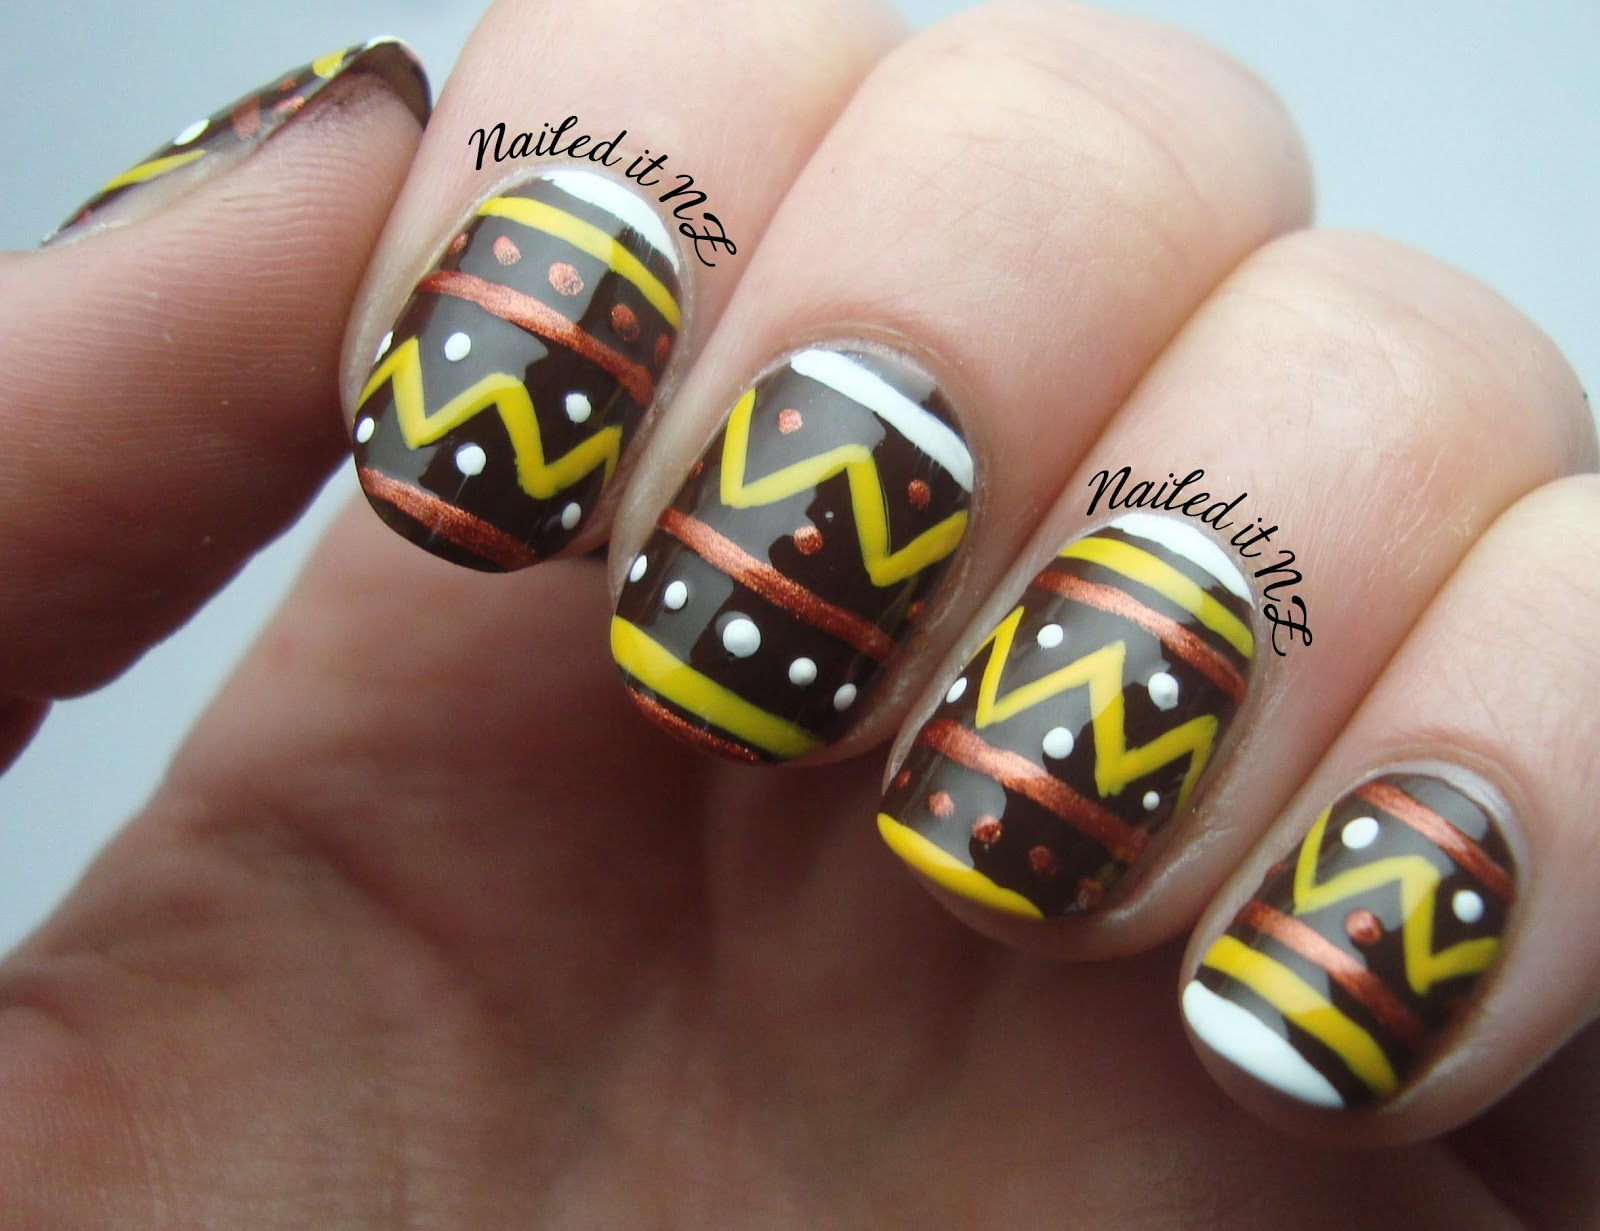 Nailed It NZ: Nail art for short nails #7 - Tribal nails